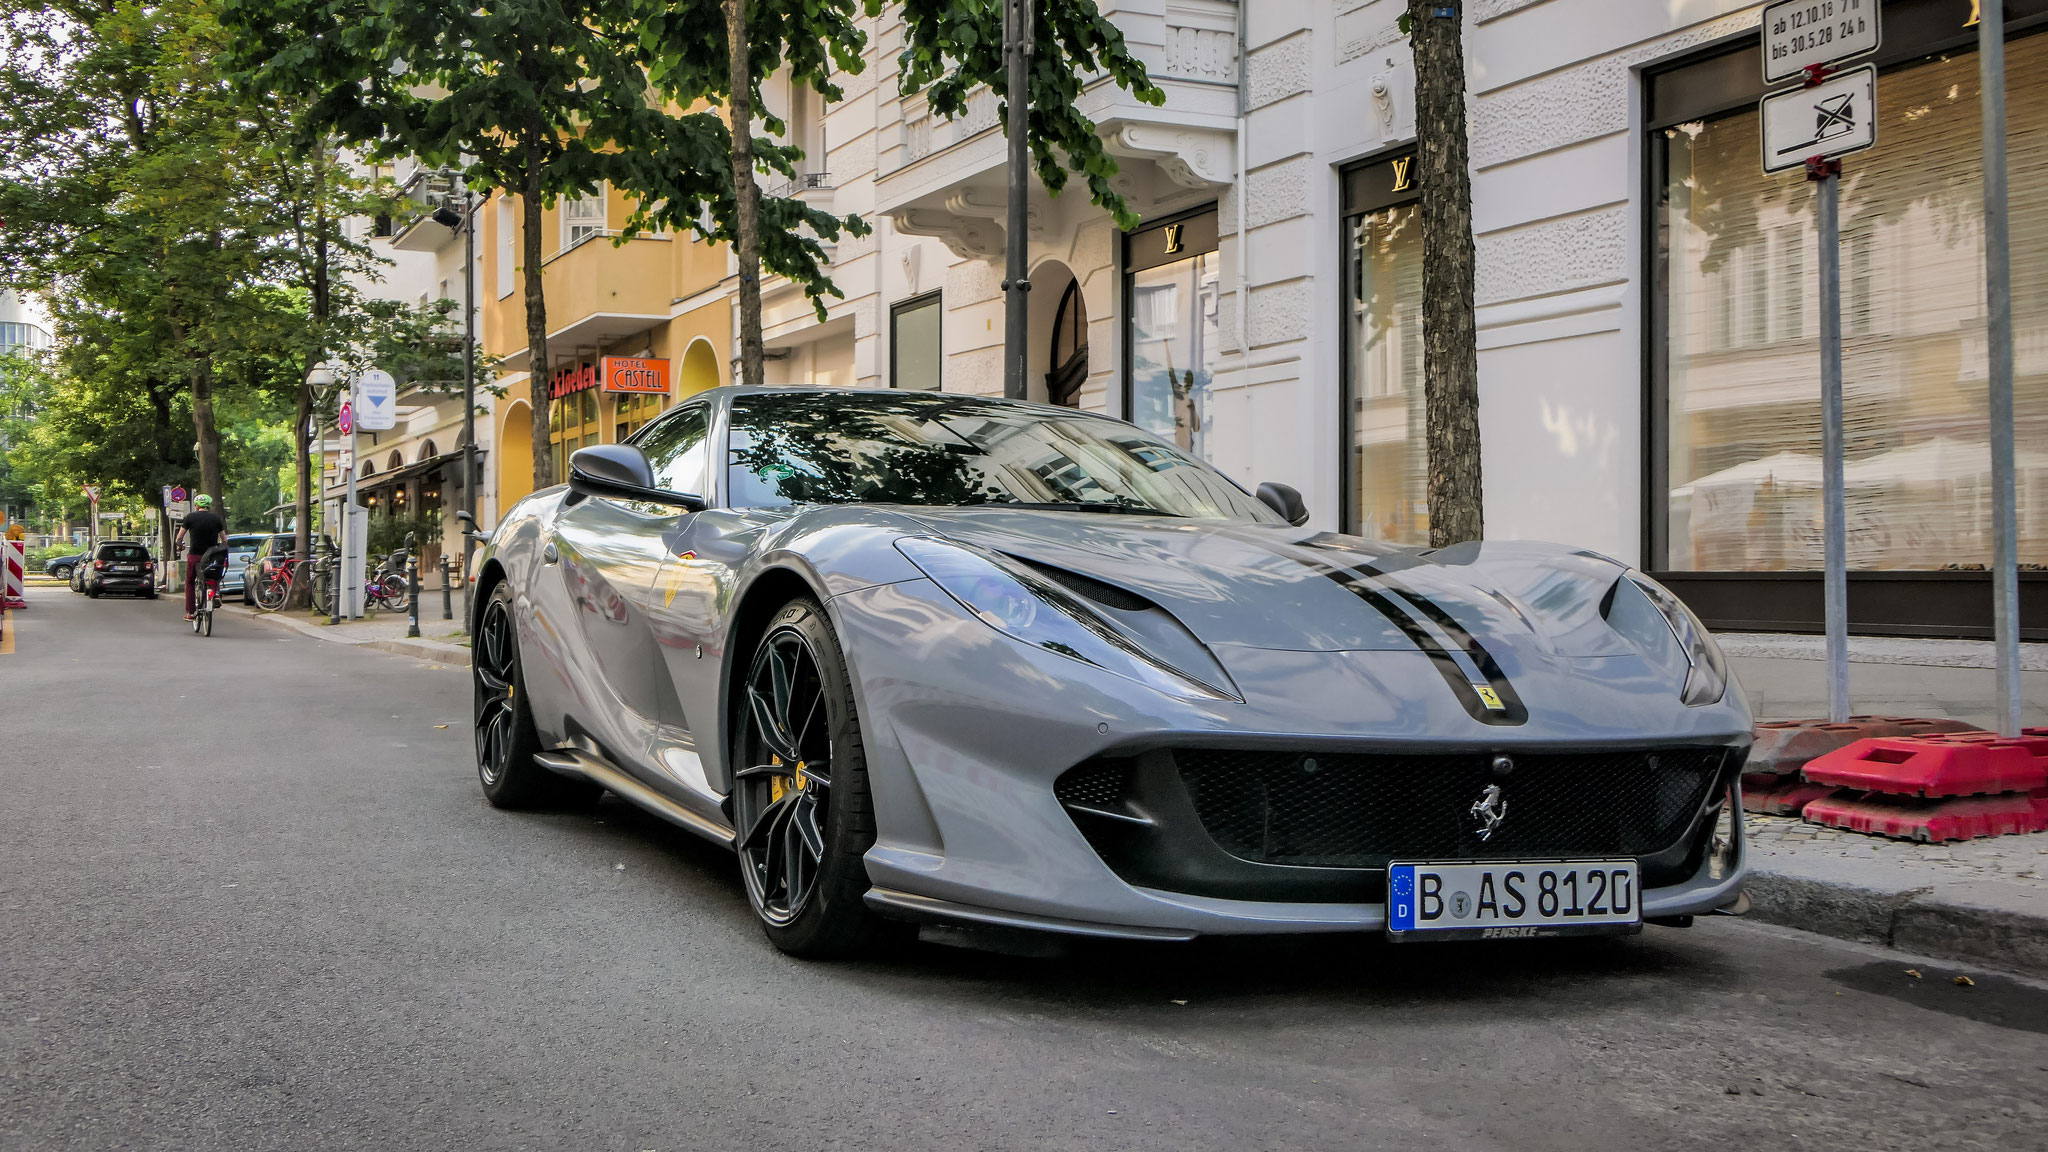 Ferrari 812 Superfast - B-AS-8120